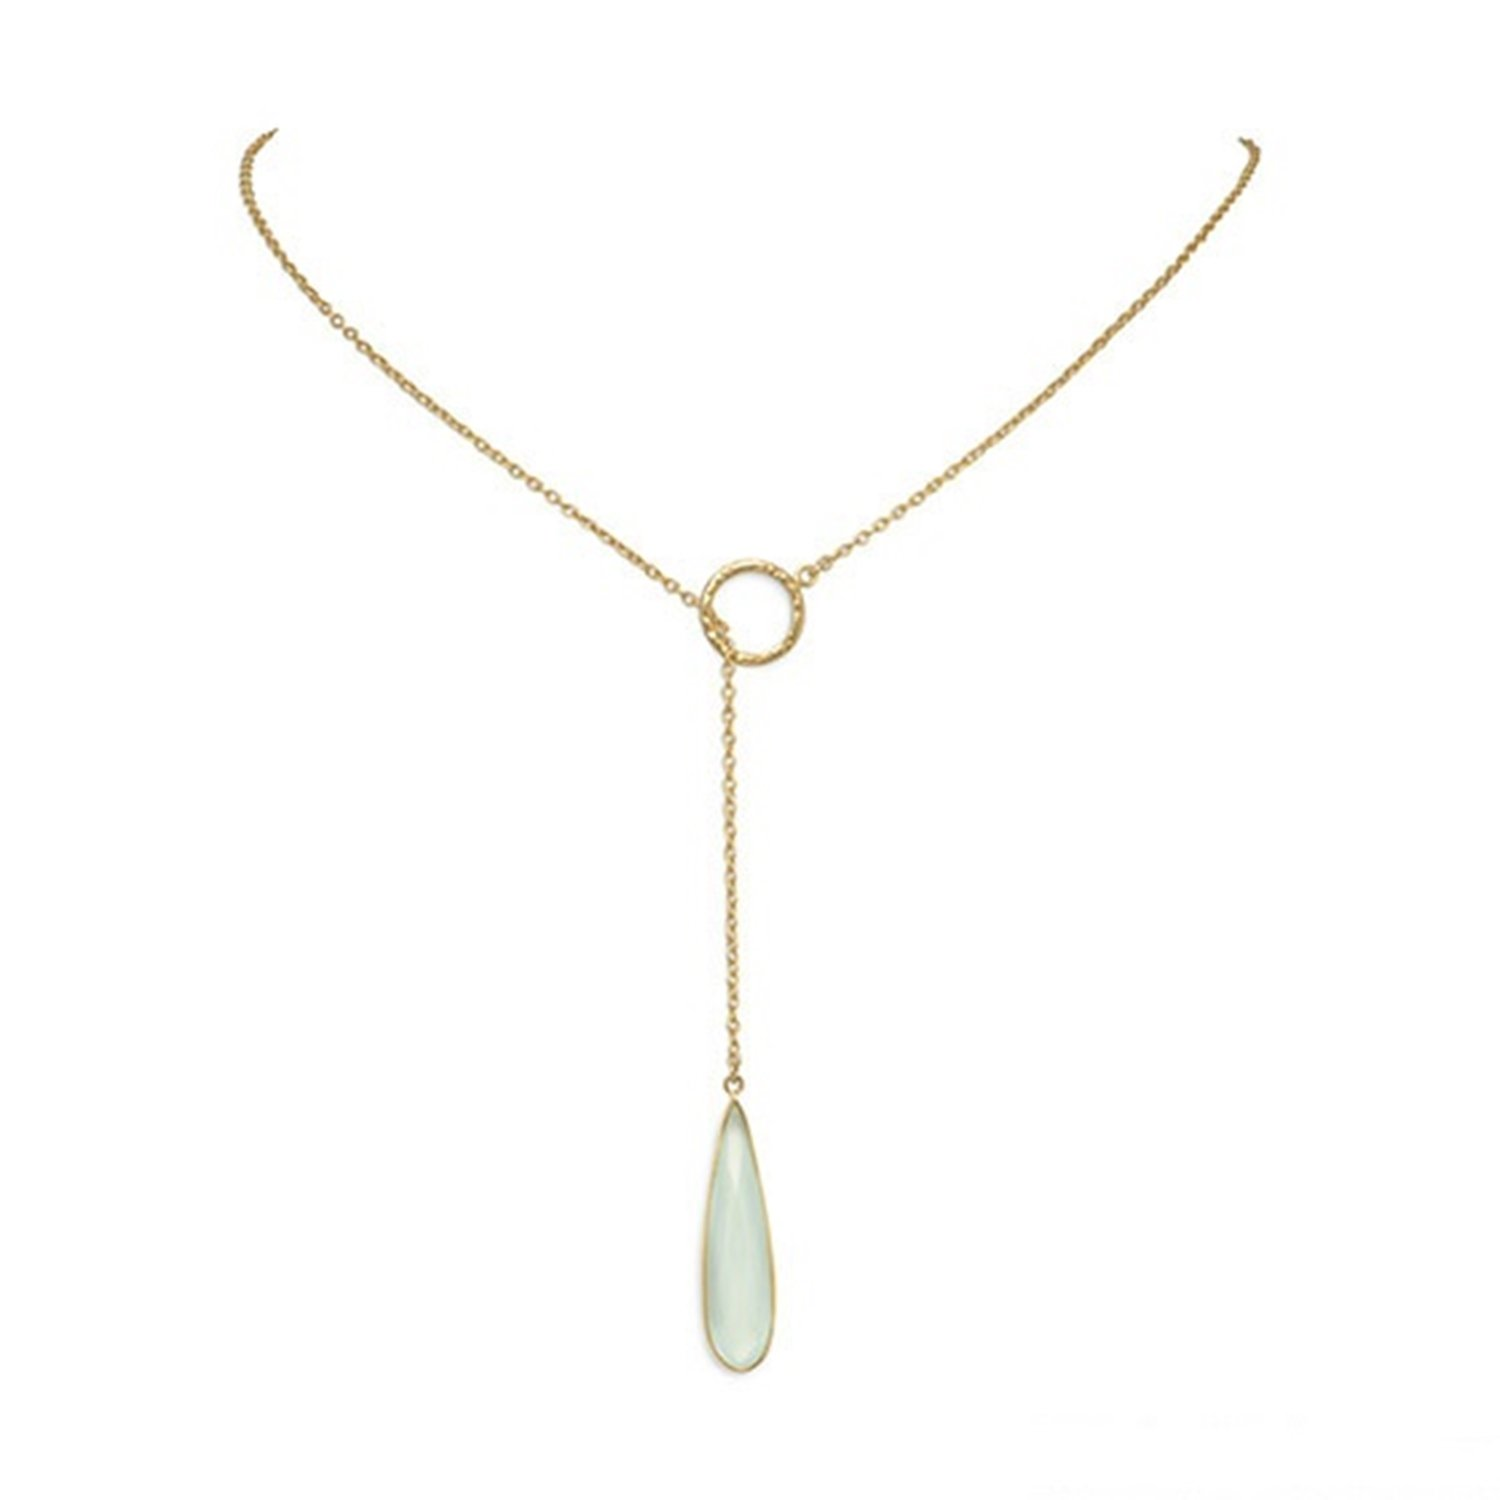 Blue Dyed Chalcedony Pendant Lariat Necklace Gold-plated Sterling Silver by AzureBella Jewelry